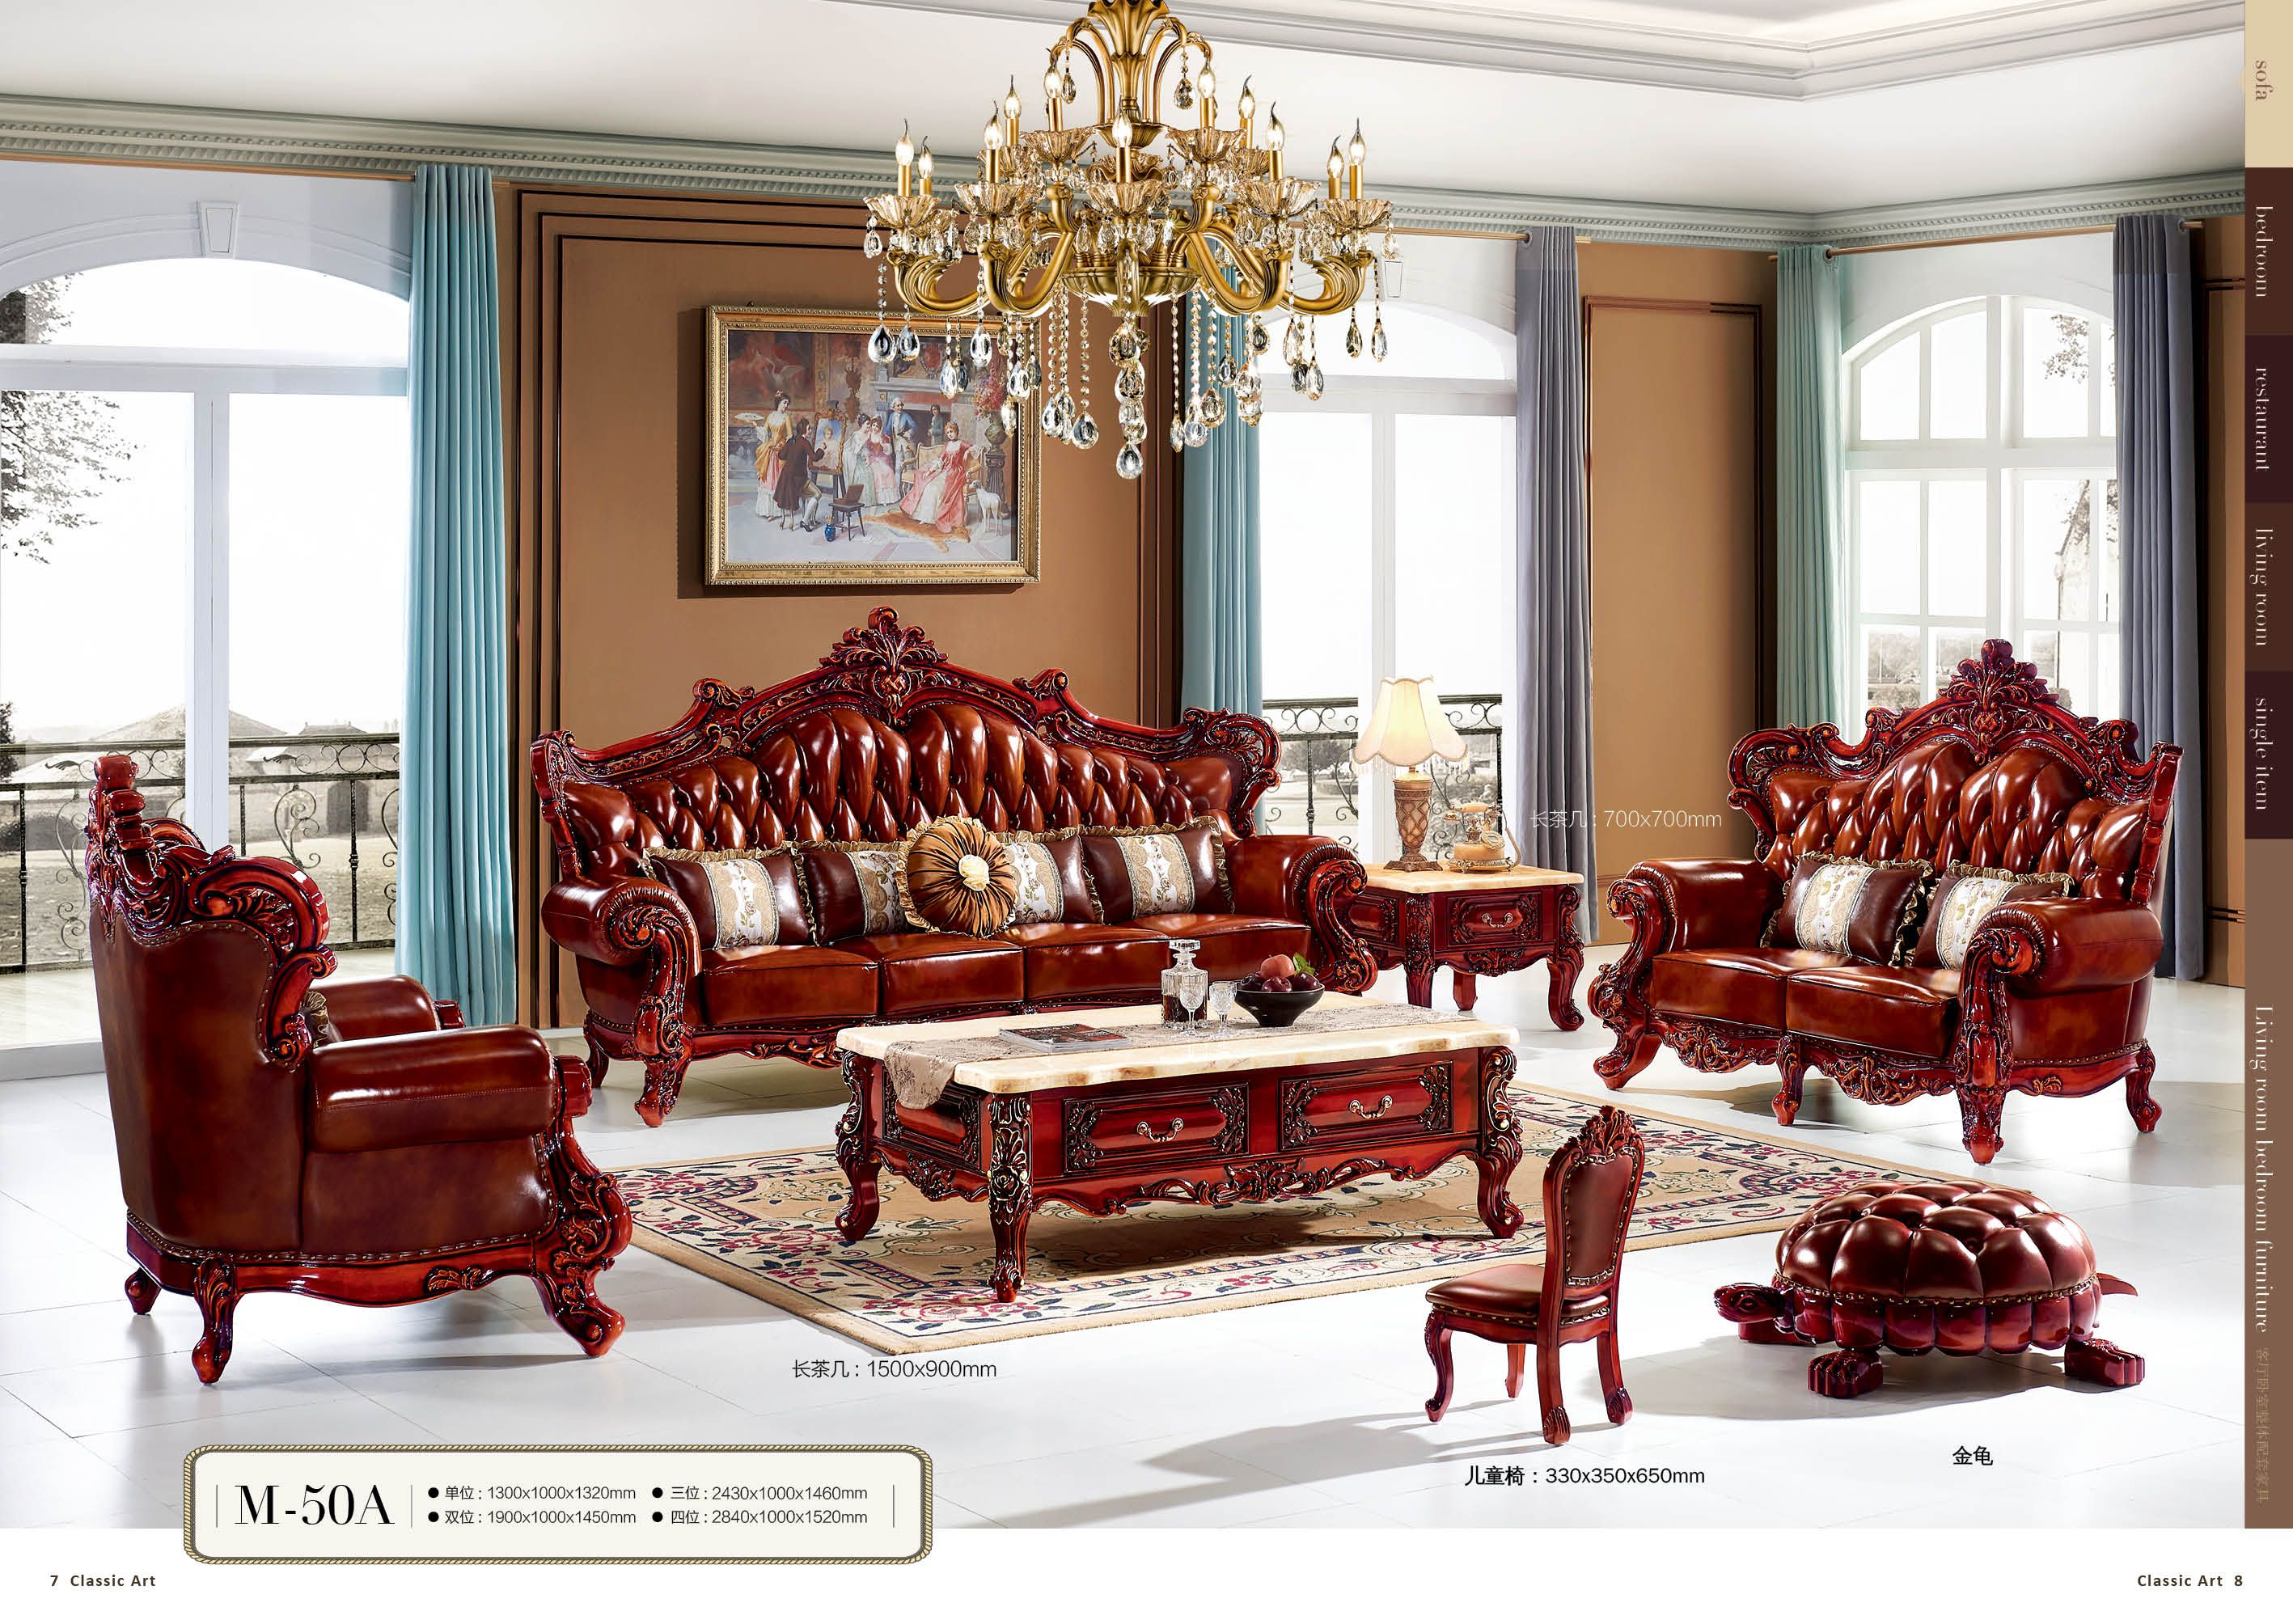 Ma Xiaoying Leather Sofas Solid Wood Frame Carved By Hands European Class Traditional Living Room Furniture Traditional Living Room Living Room Sets Furniture #traditional #living #room #sets #furniture